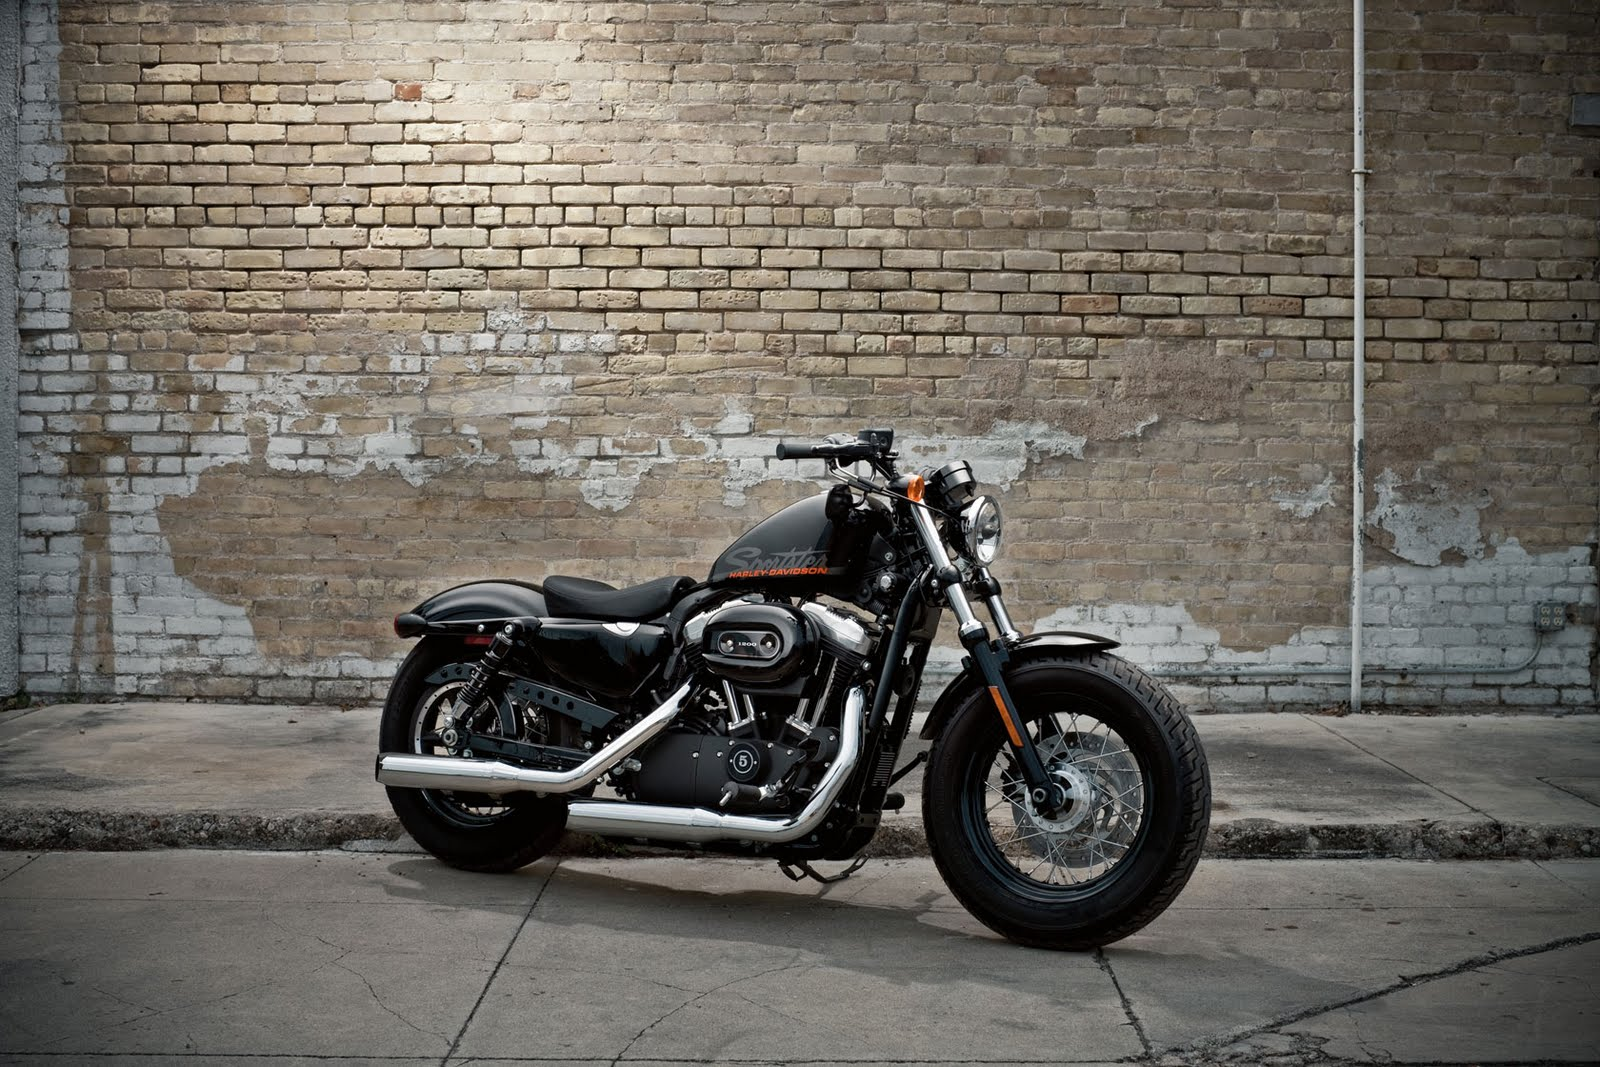 Harley Davidson HD Wallpaper